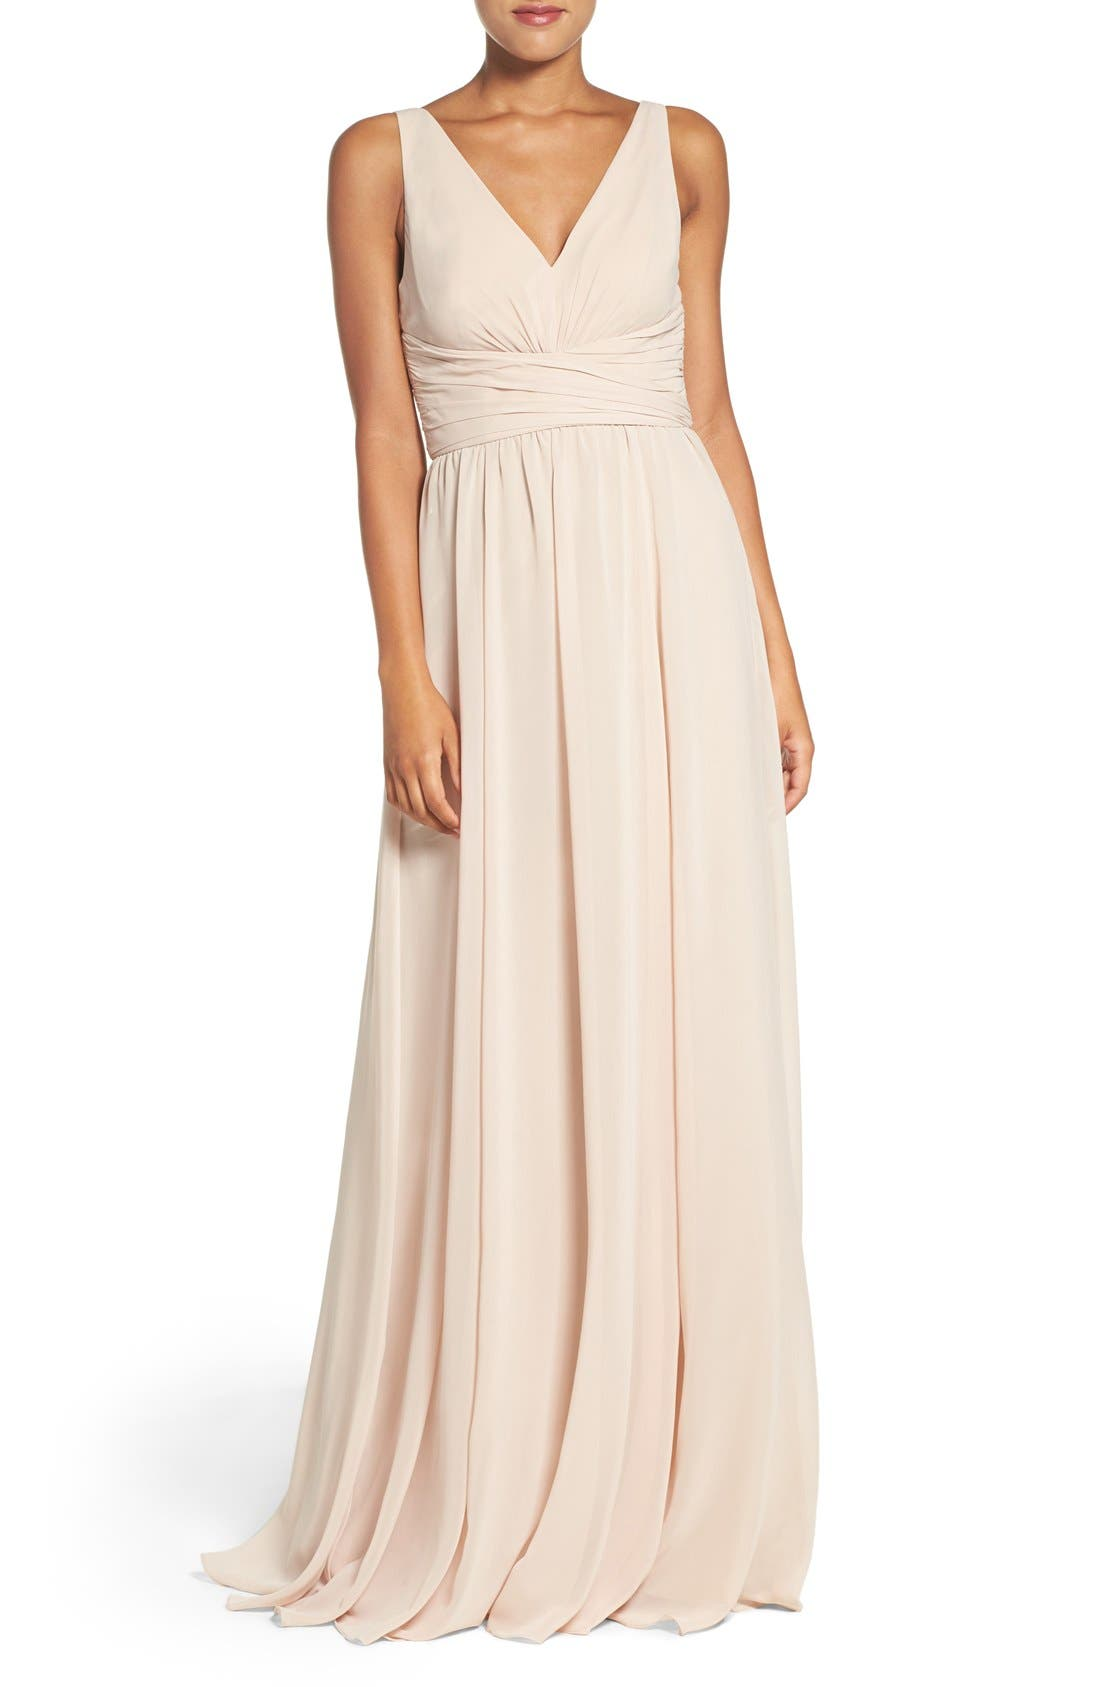 Alternate Image 1 Selected - Amsale 'Justine' Double V-Neck Chiffon Gown